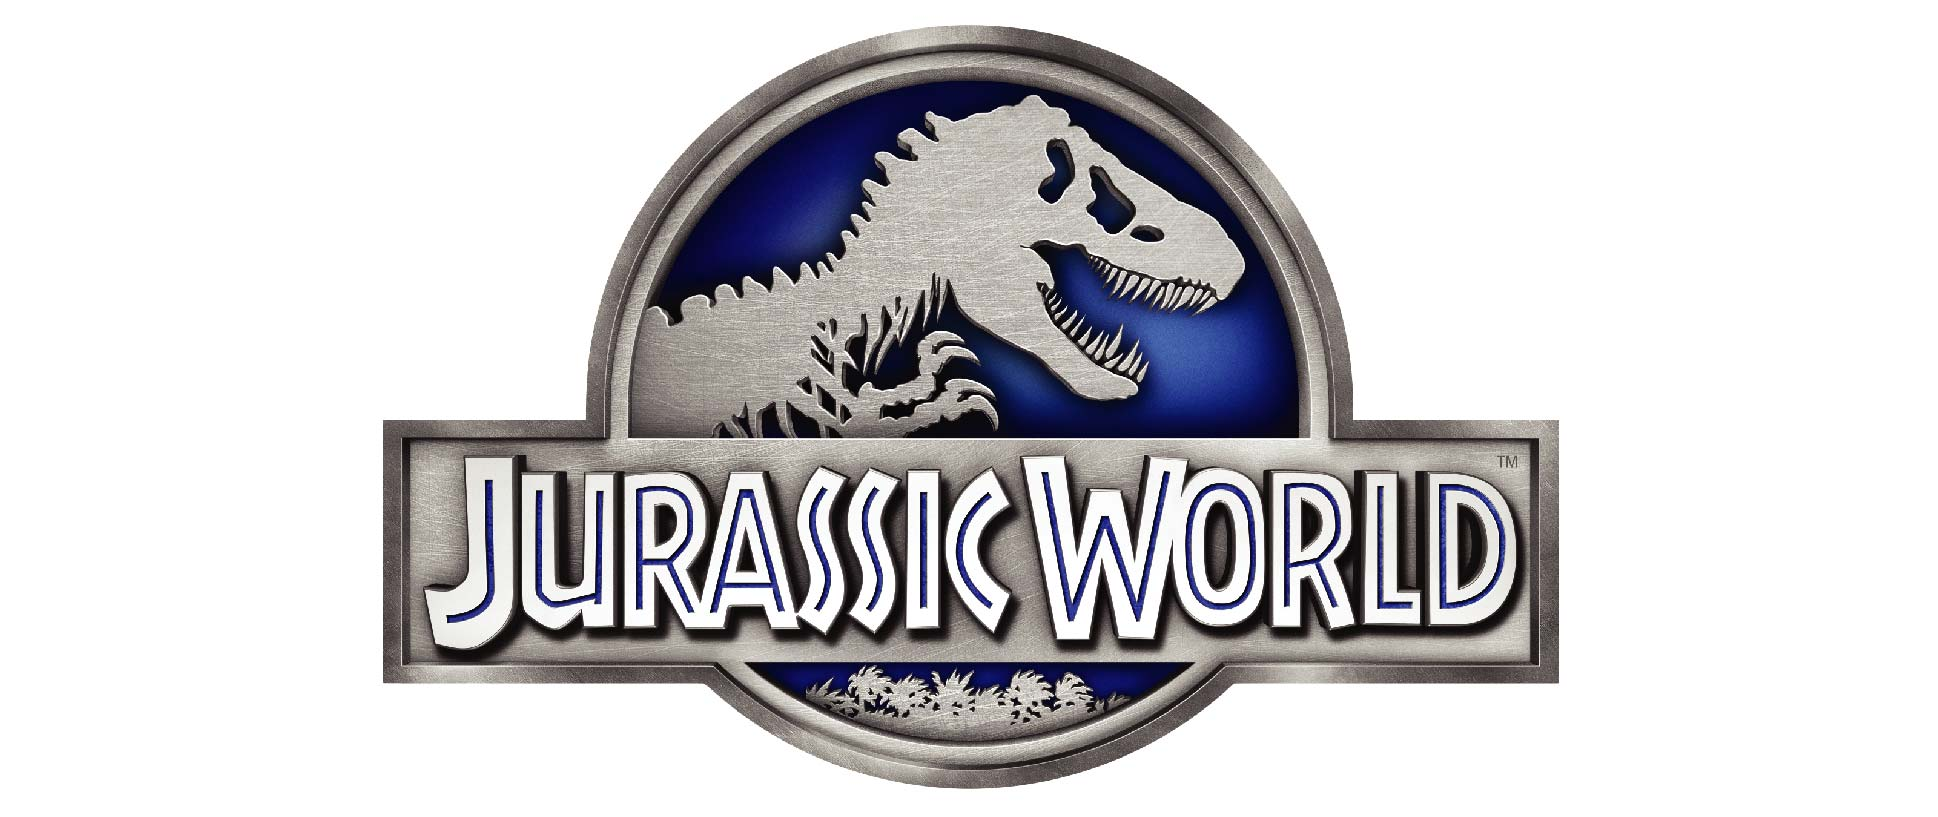 logo-Jurassic-world.jpg